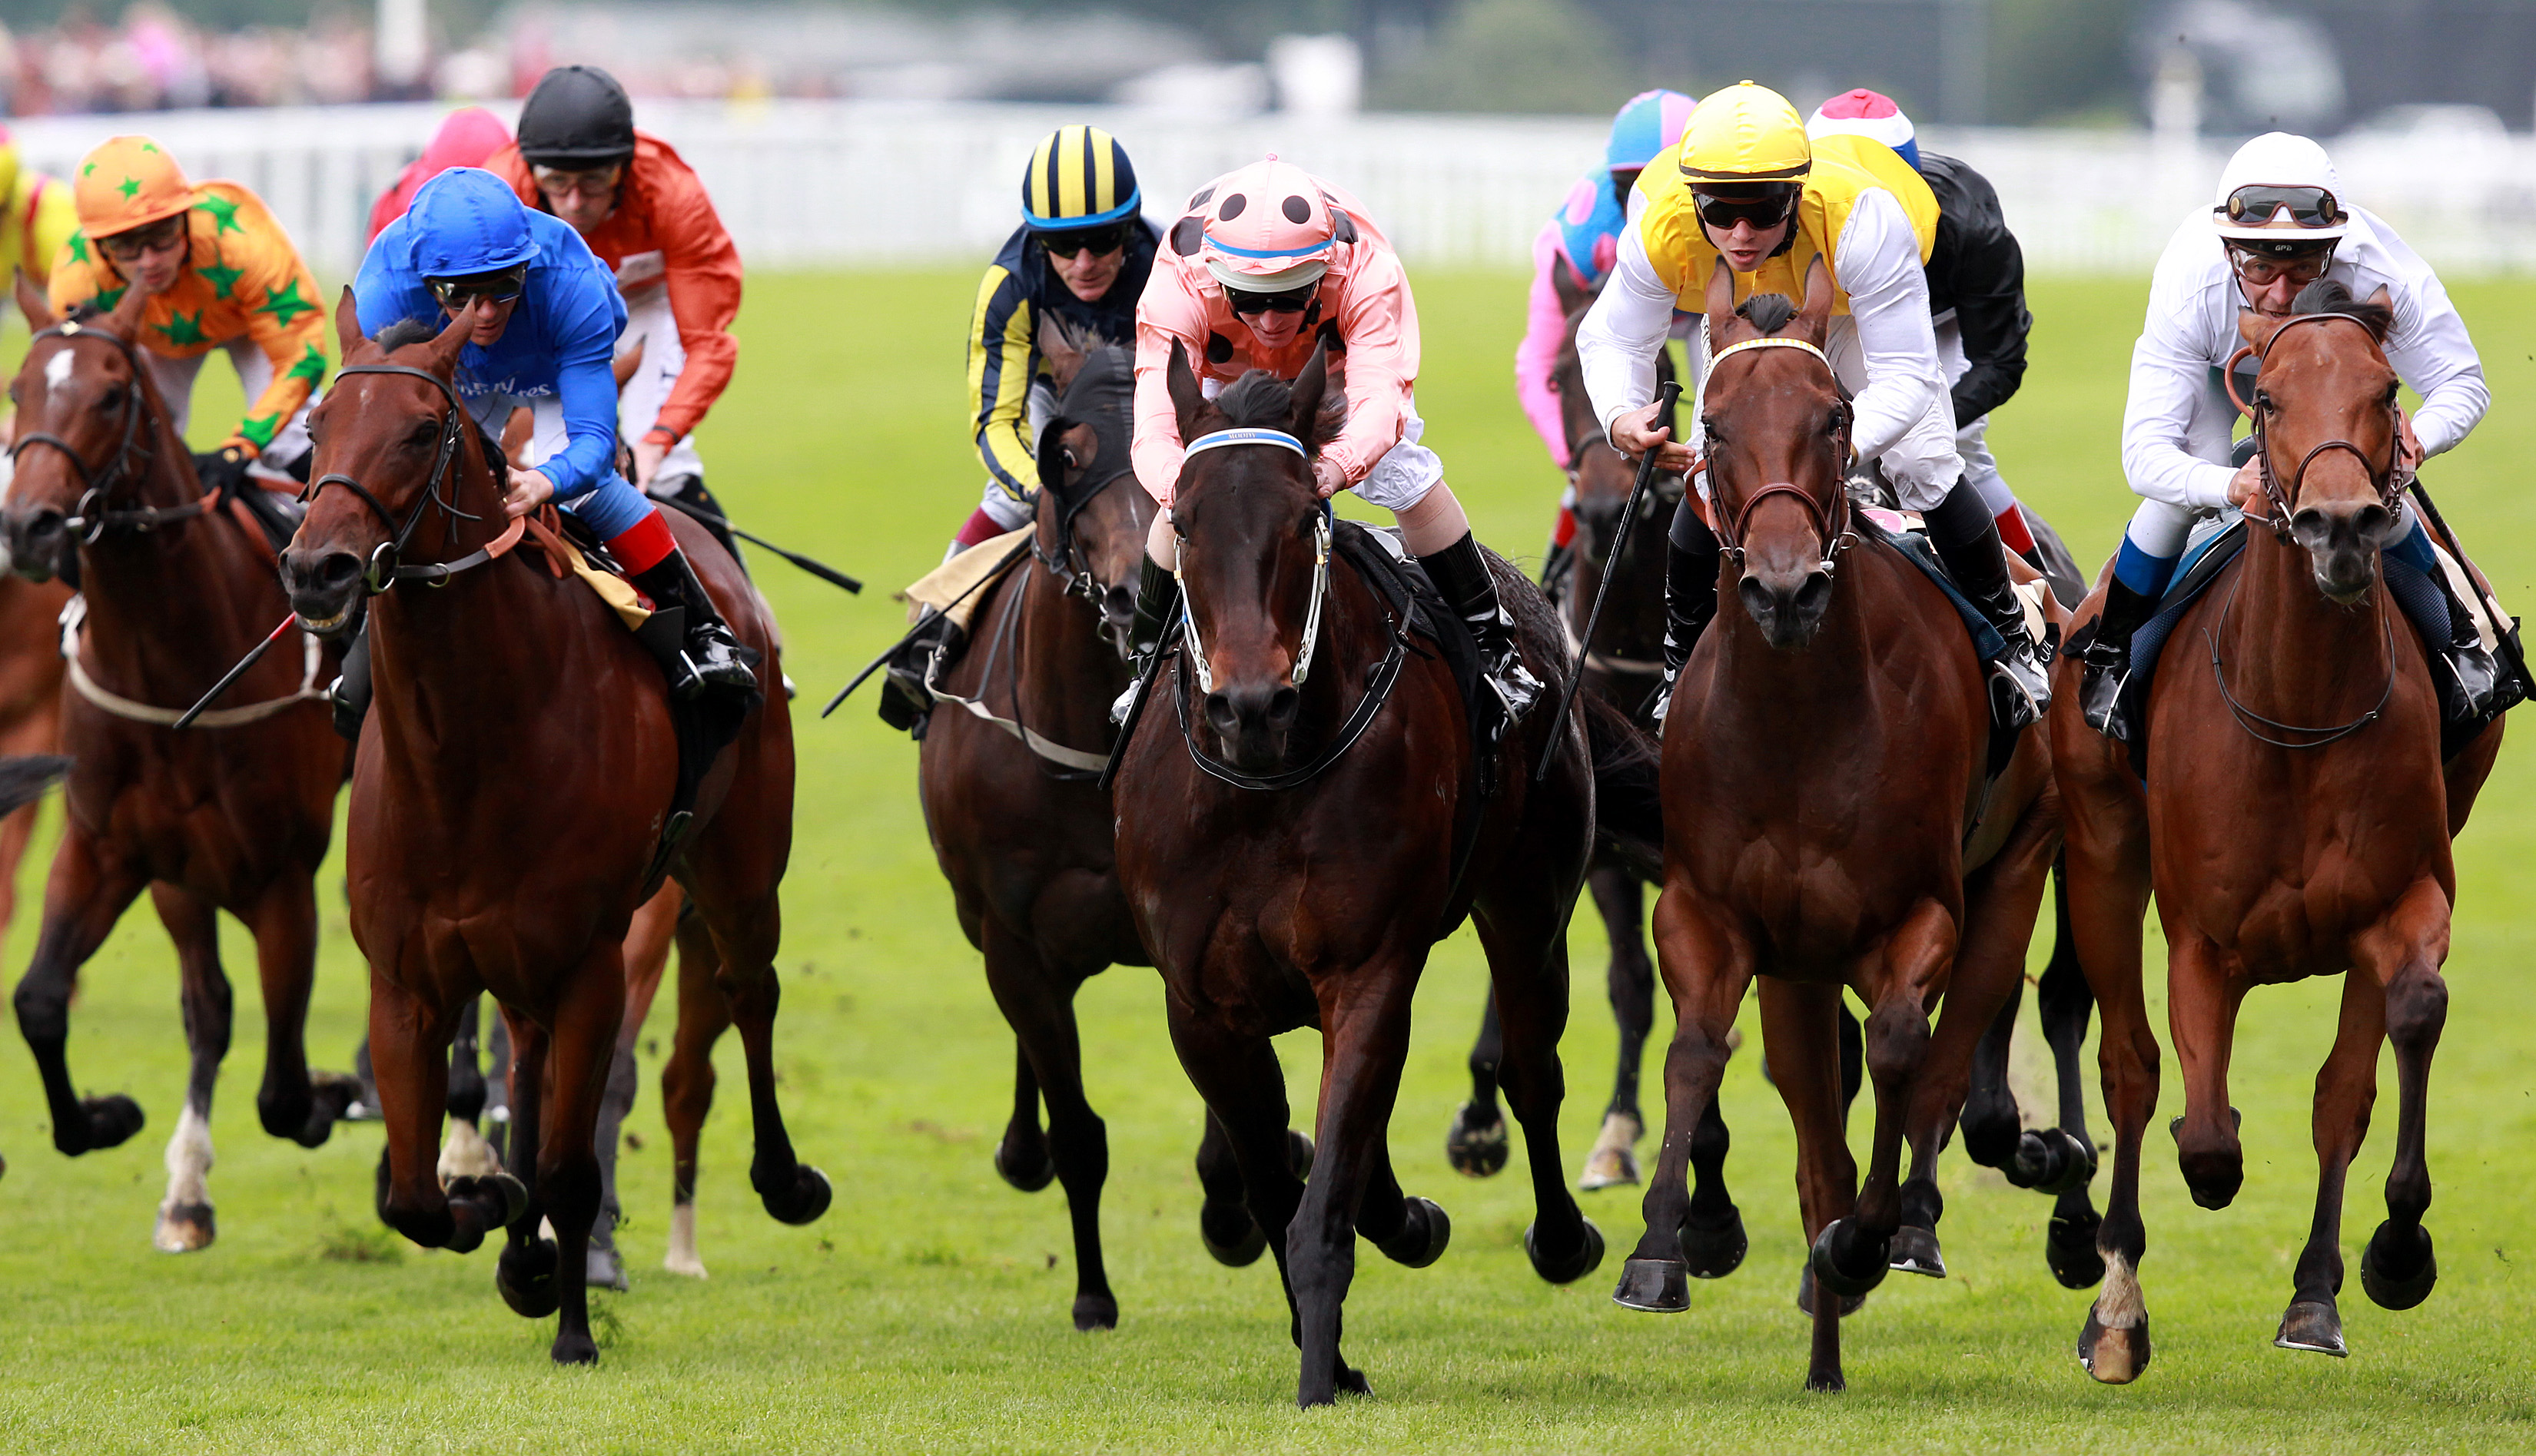 ... Royal Ascot for British return from doping ban - Horse Racing news